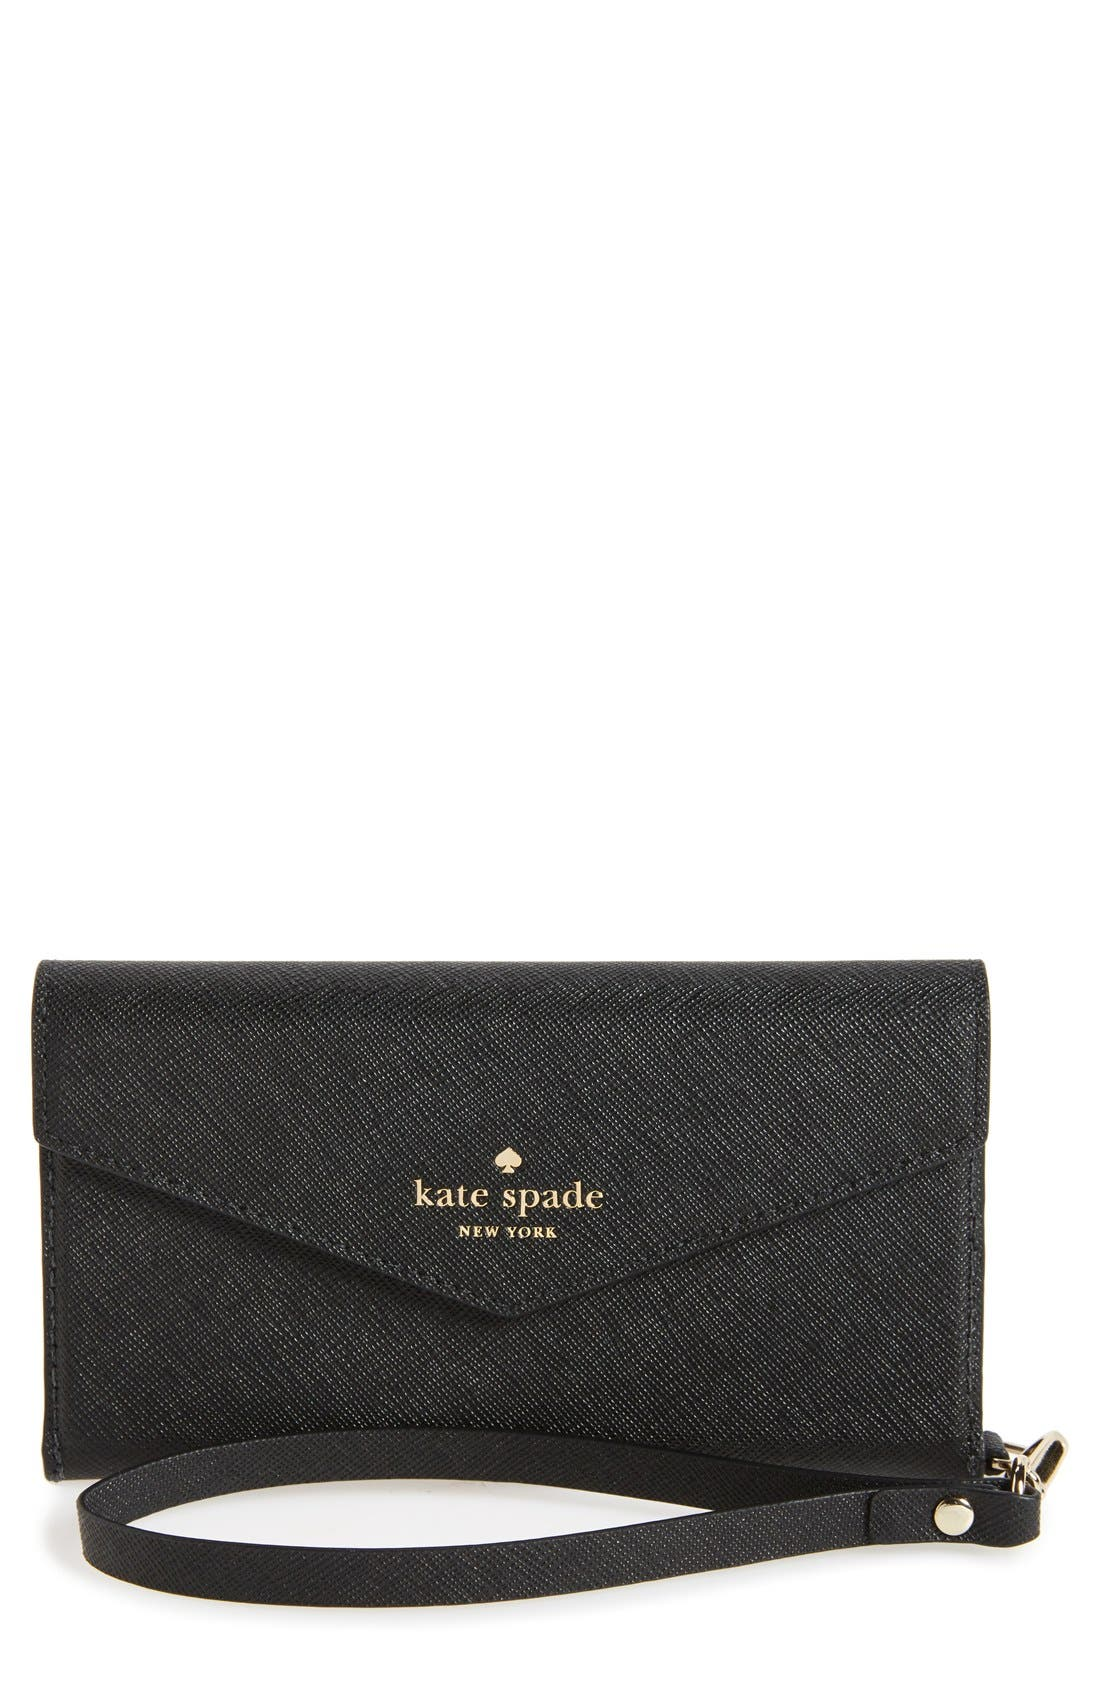 Main Image - kate spade new york iPhone 7 & 7 Plus leather wristlet